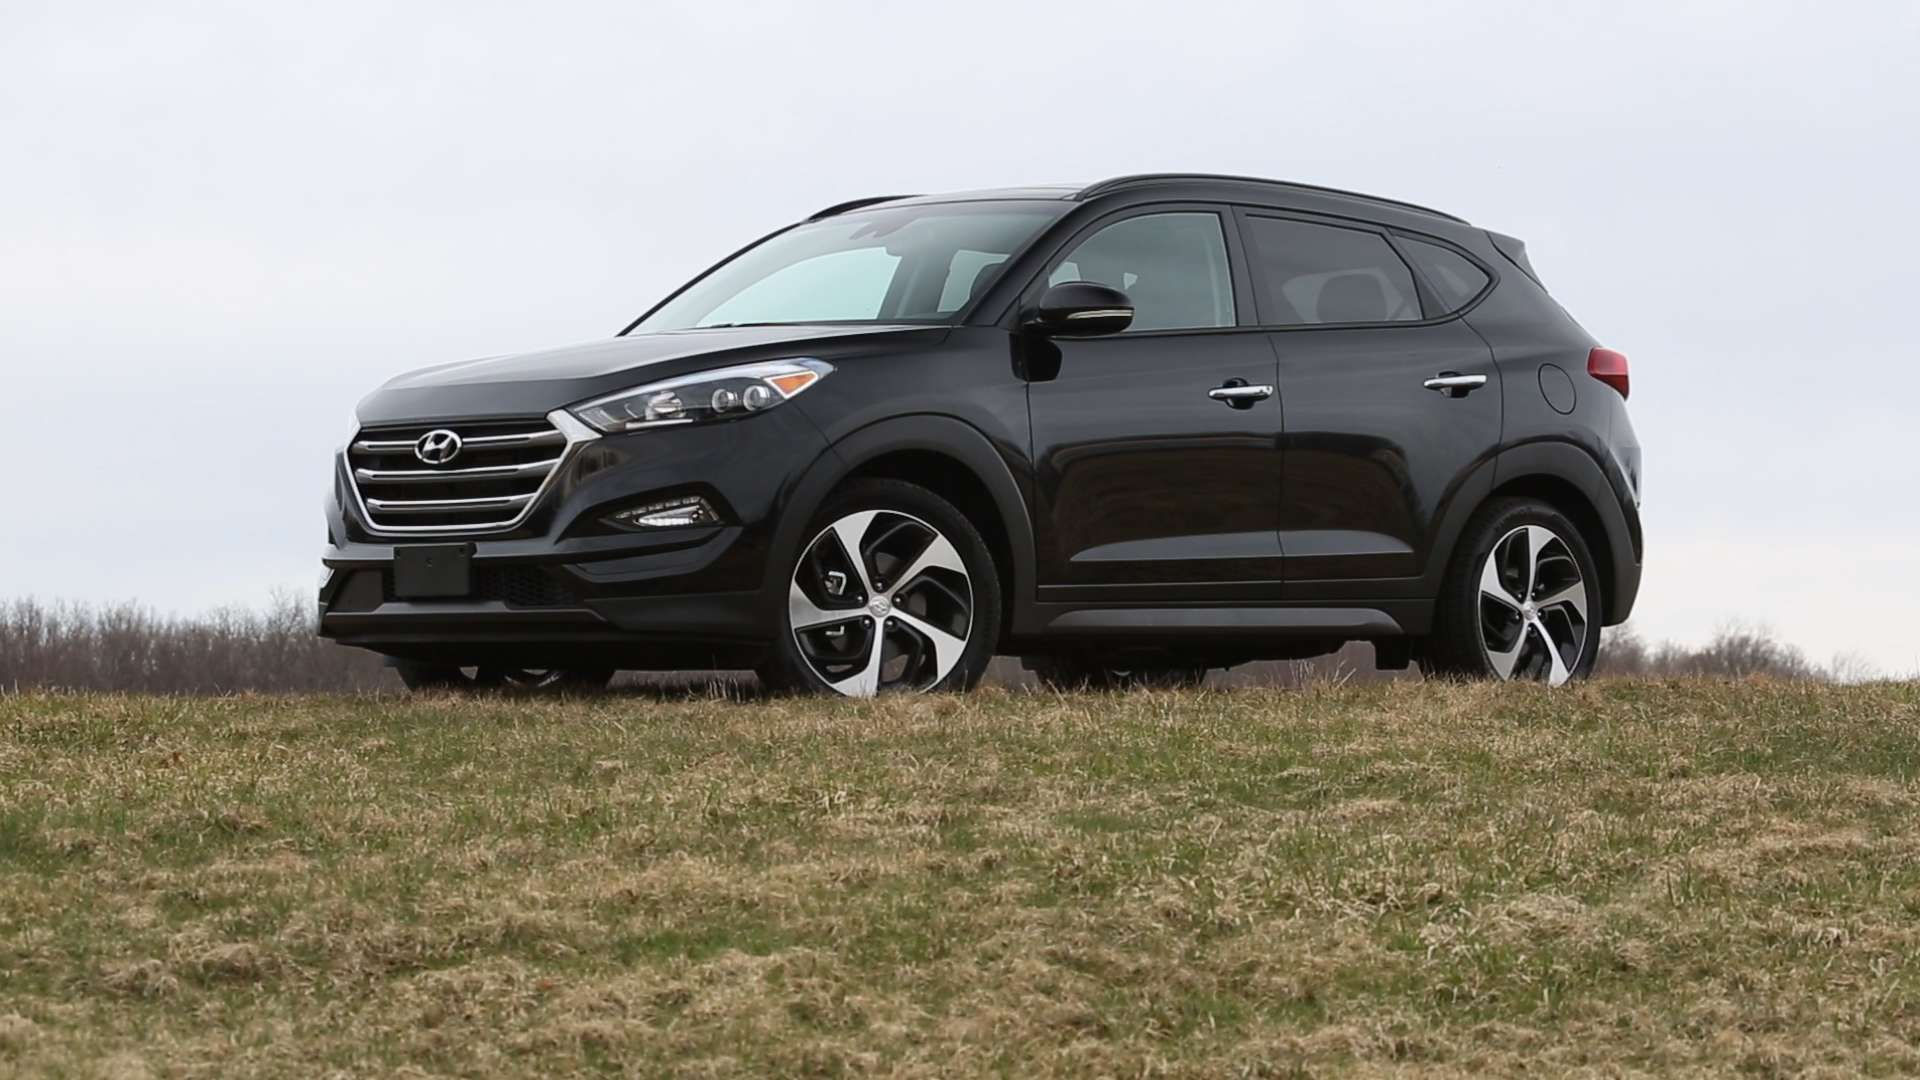 Hyundai has given best exteriors to tucson